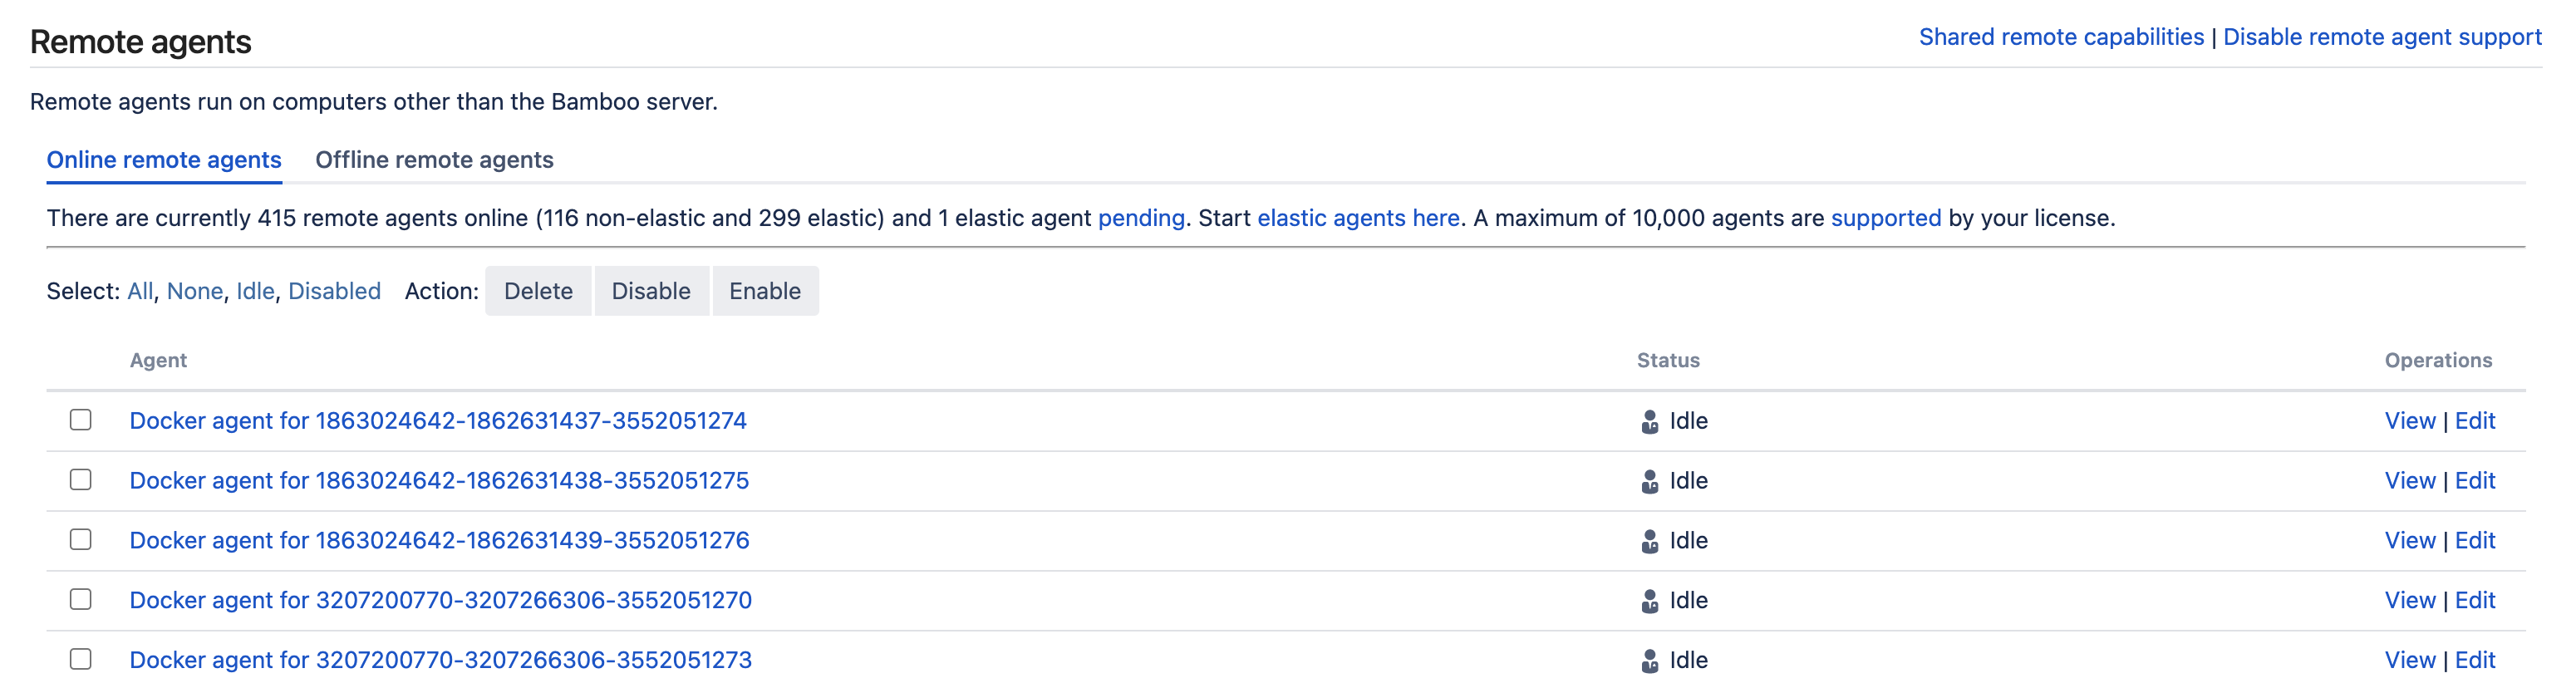 Remote agents list and configuration